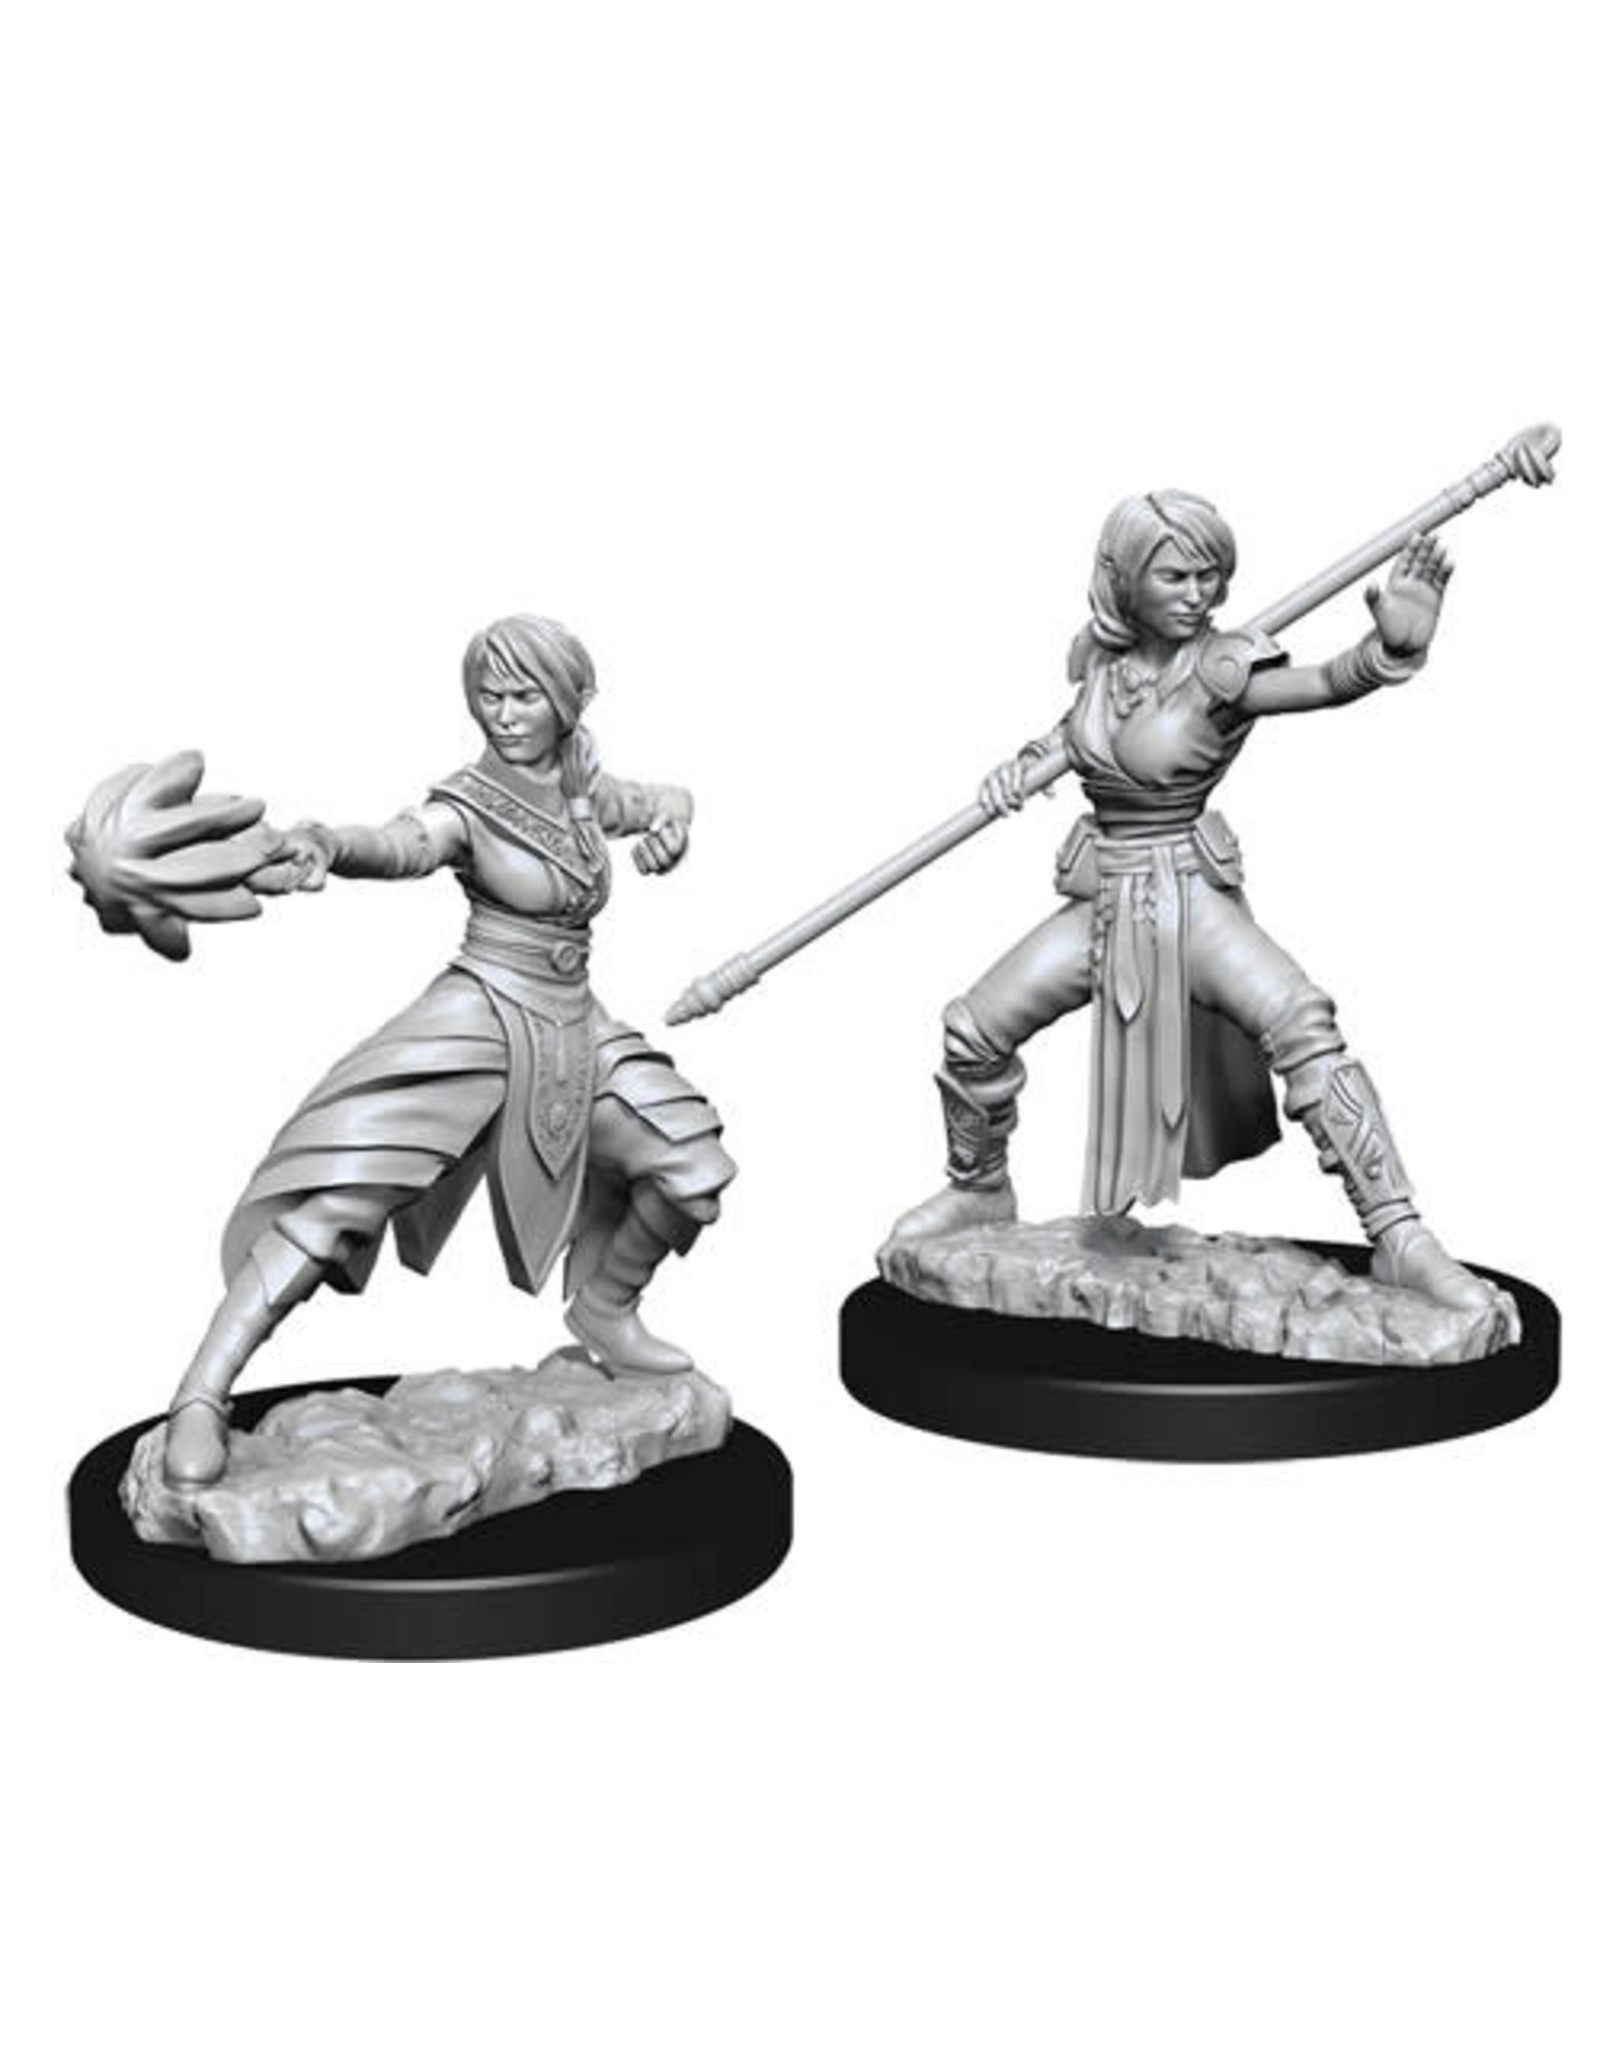 D&D Unpainted Minis: Half-Elf Female Monk (Wave 10)